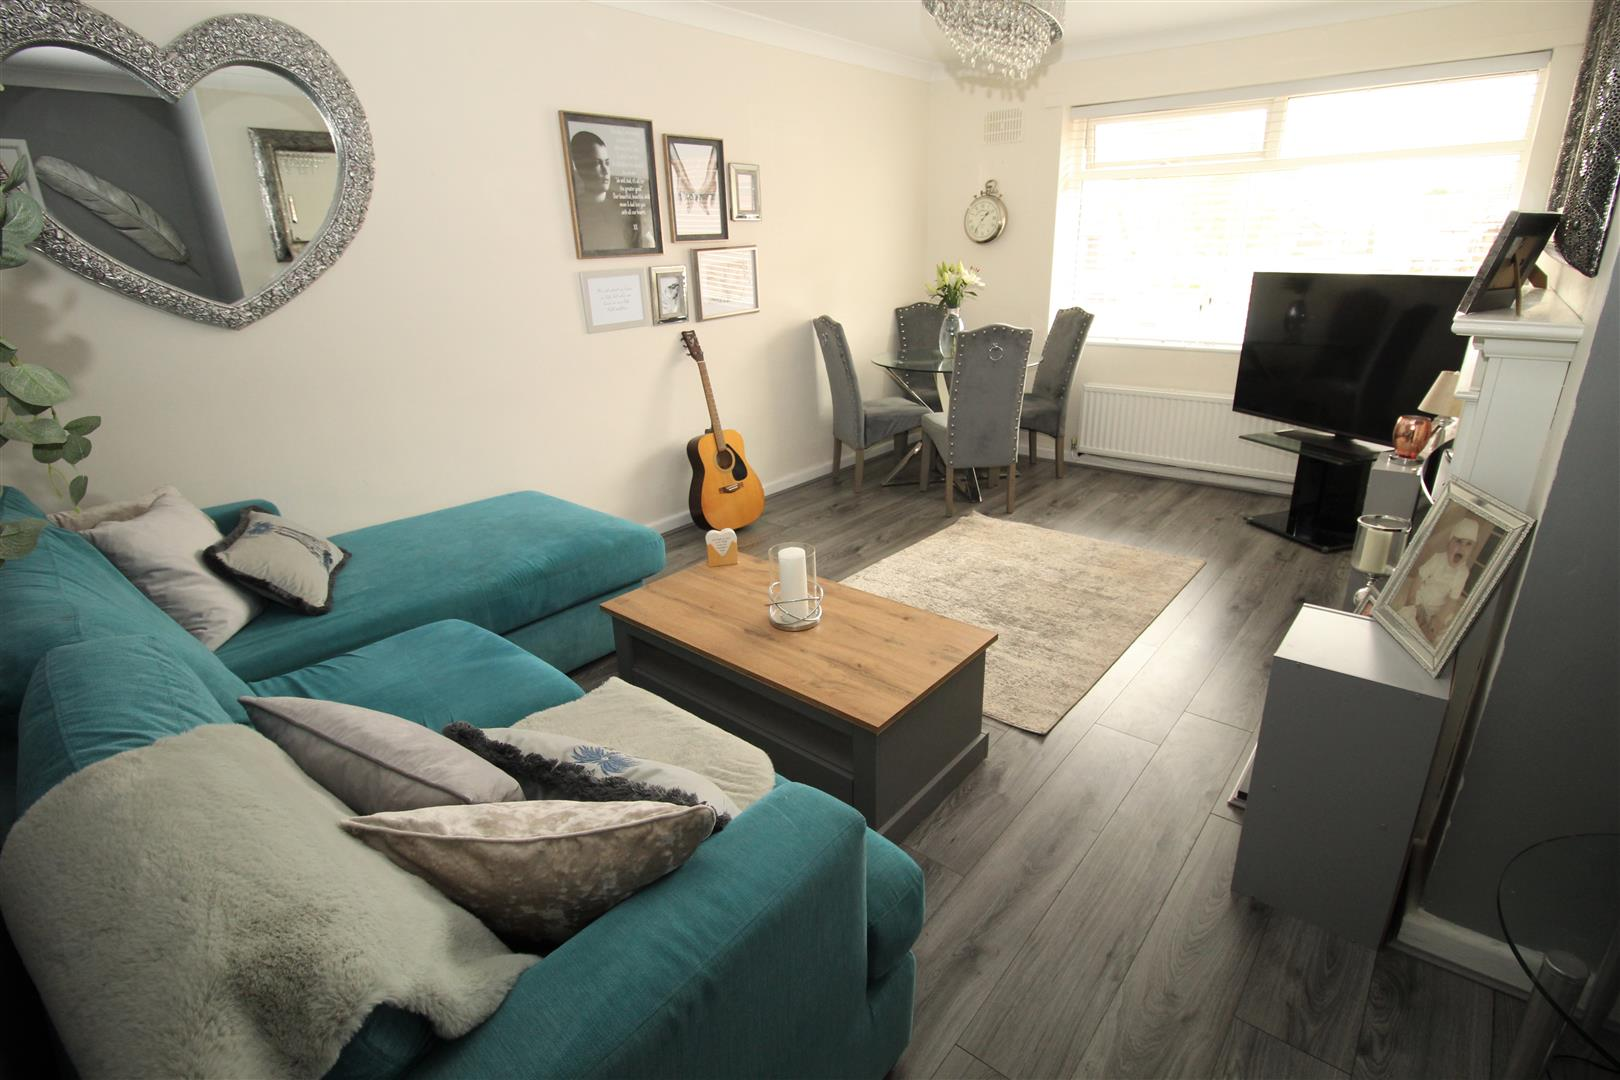 2 Bedrooms, Flat - First Floor, Oriel Close, Old Roan, Liverpool